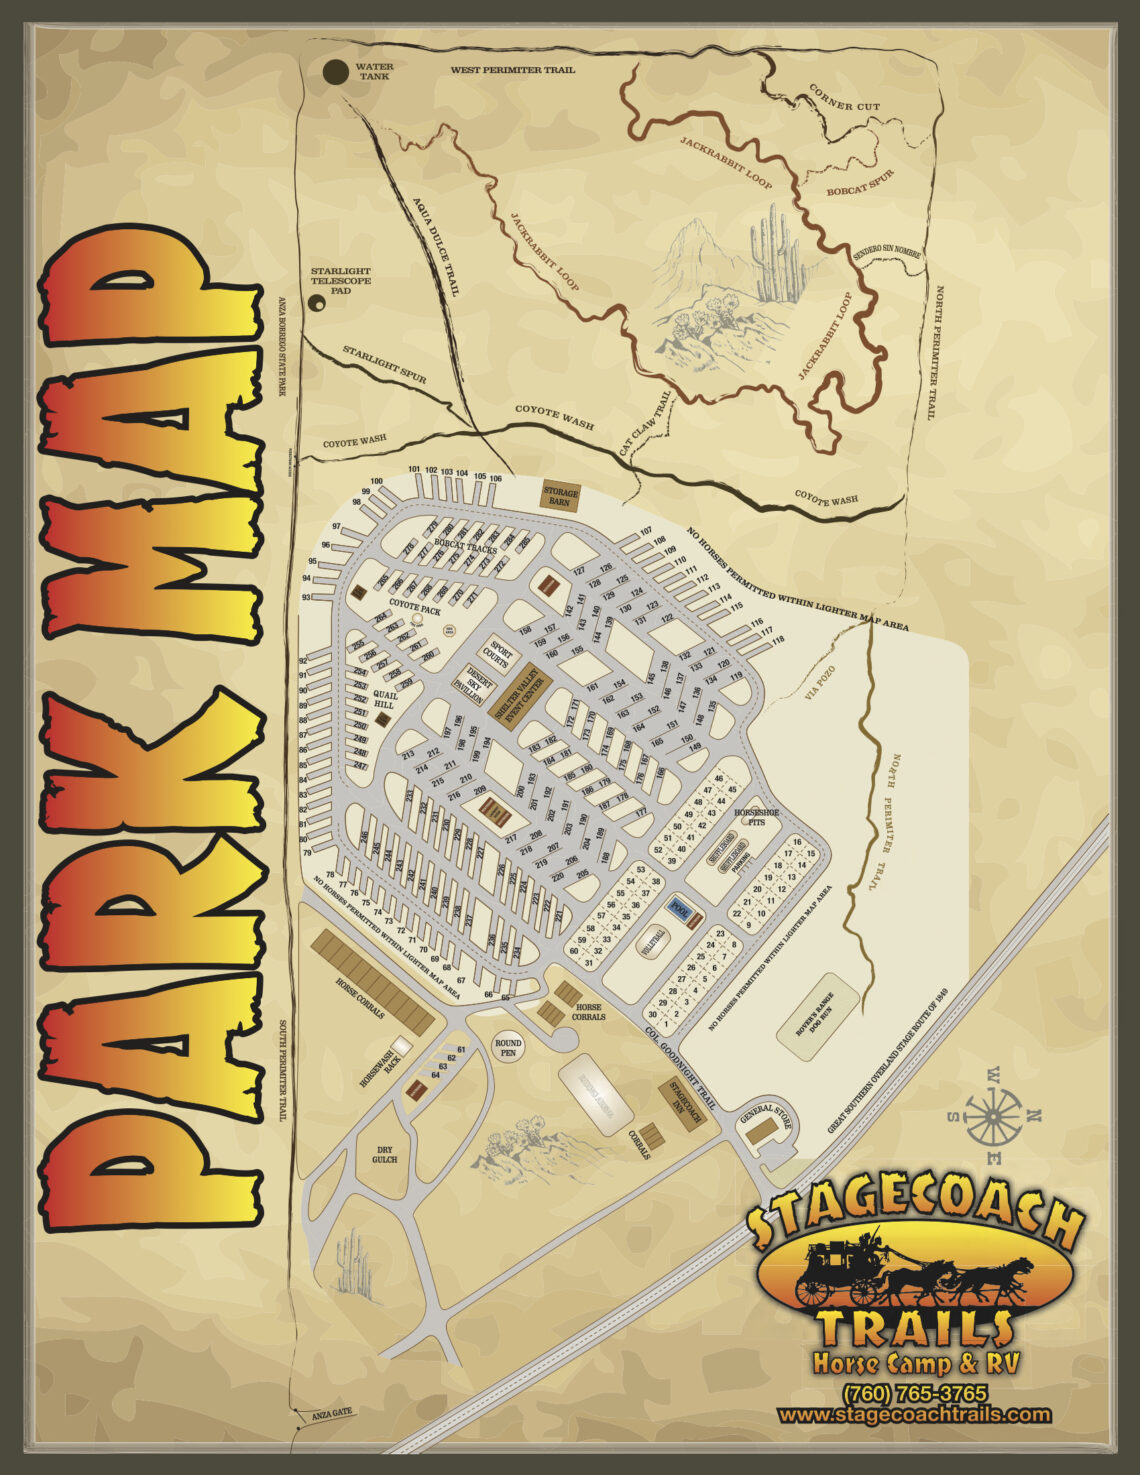 A detailed park map of Stagecoach Trails Campground that includes campsite numbers and building placements